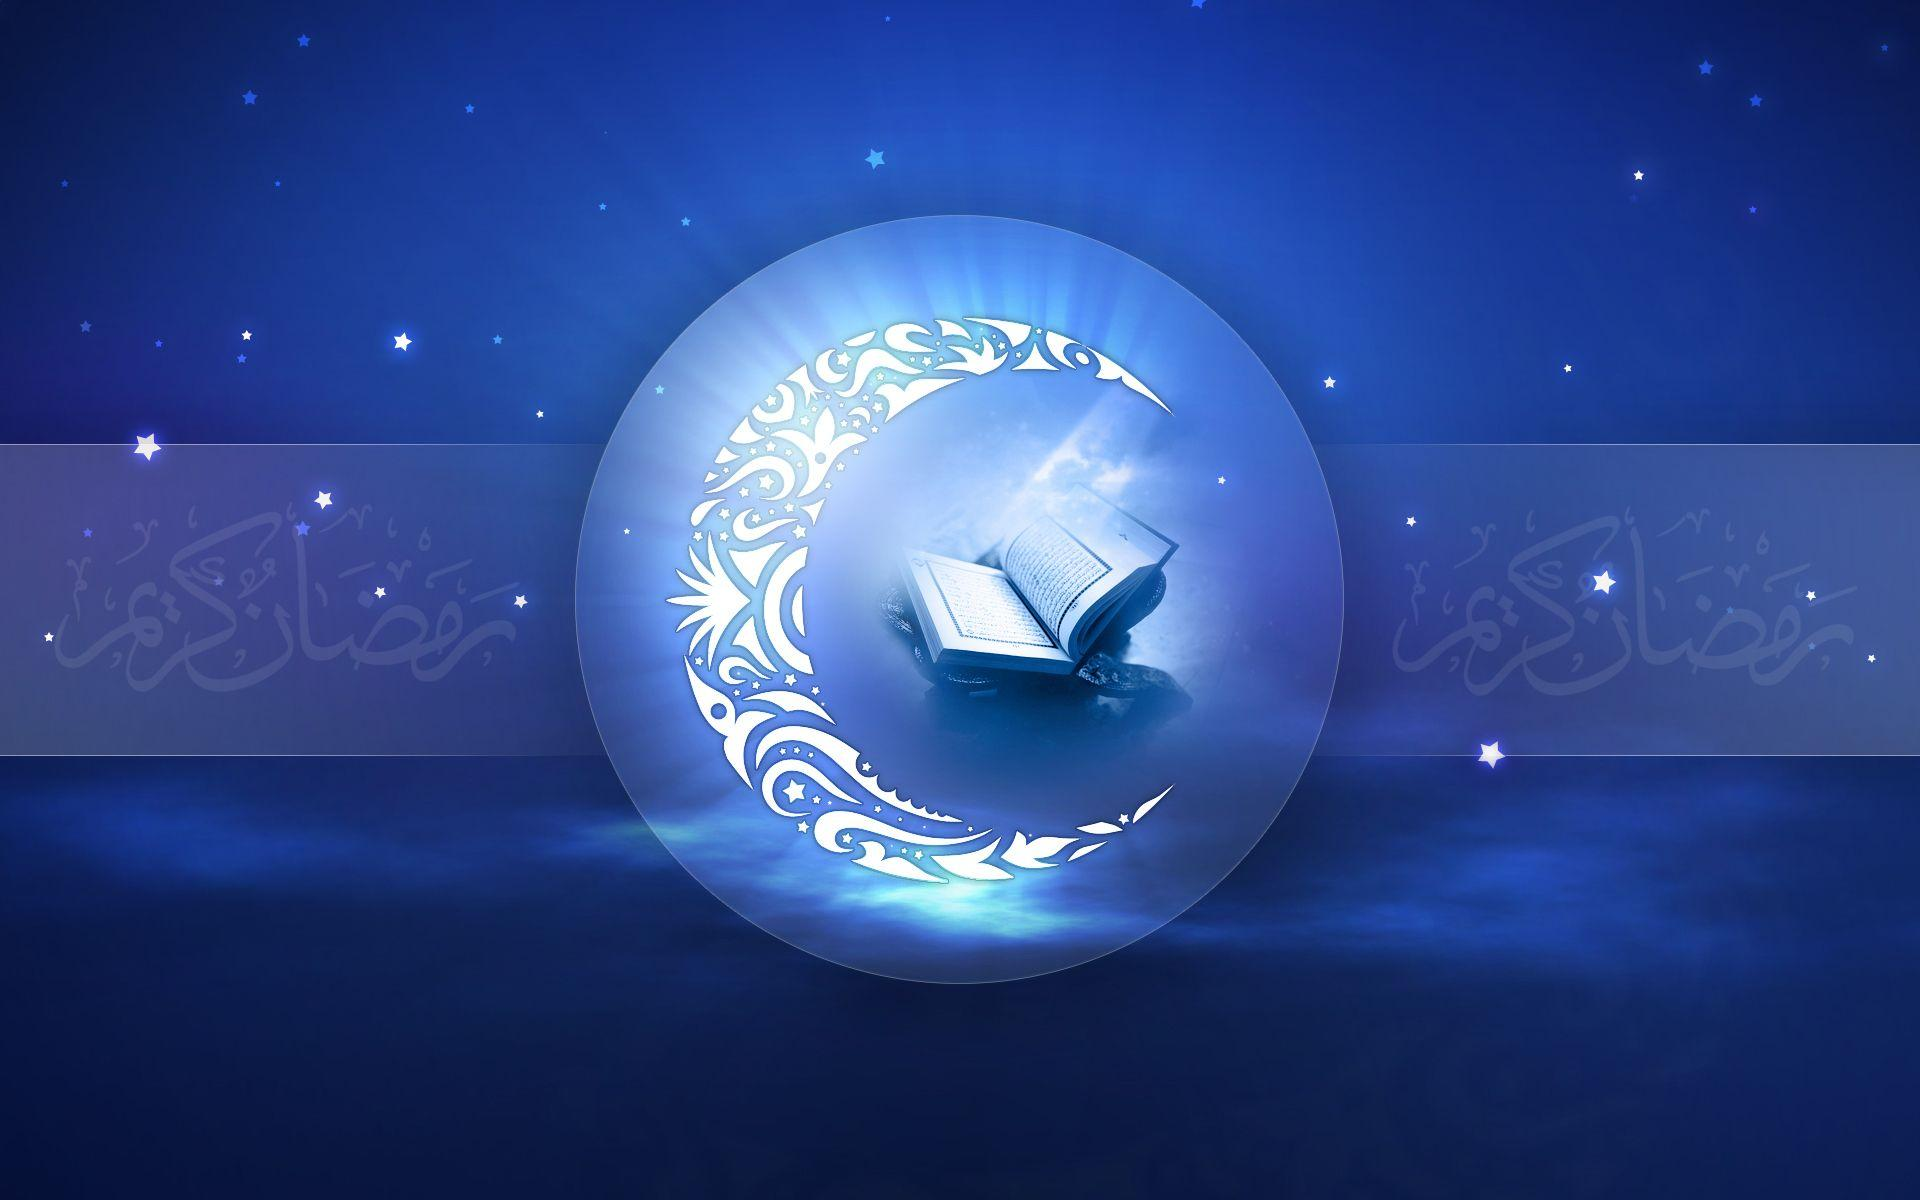 Lovely Ramadan wallpapers and image